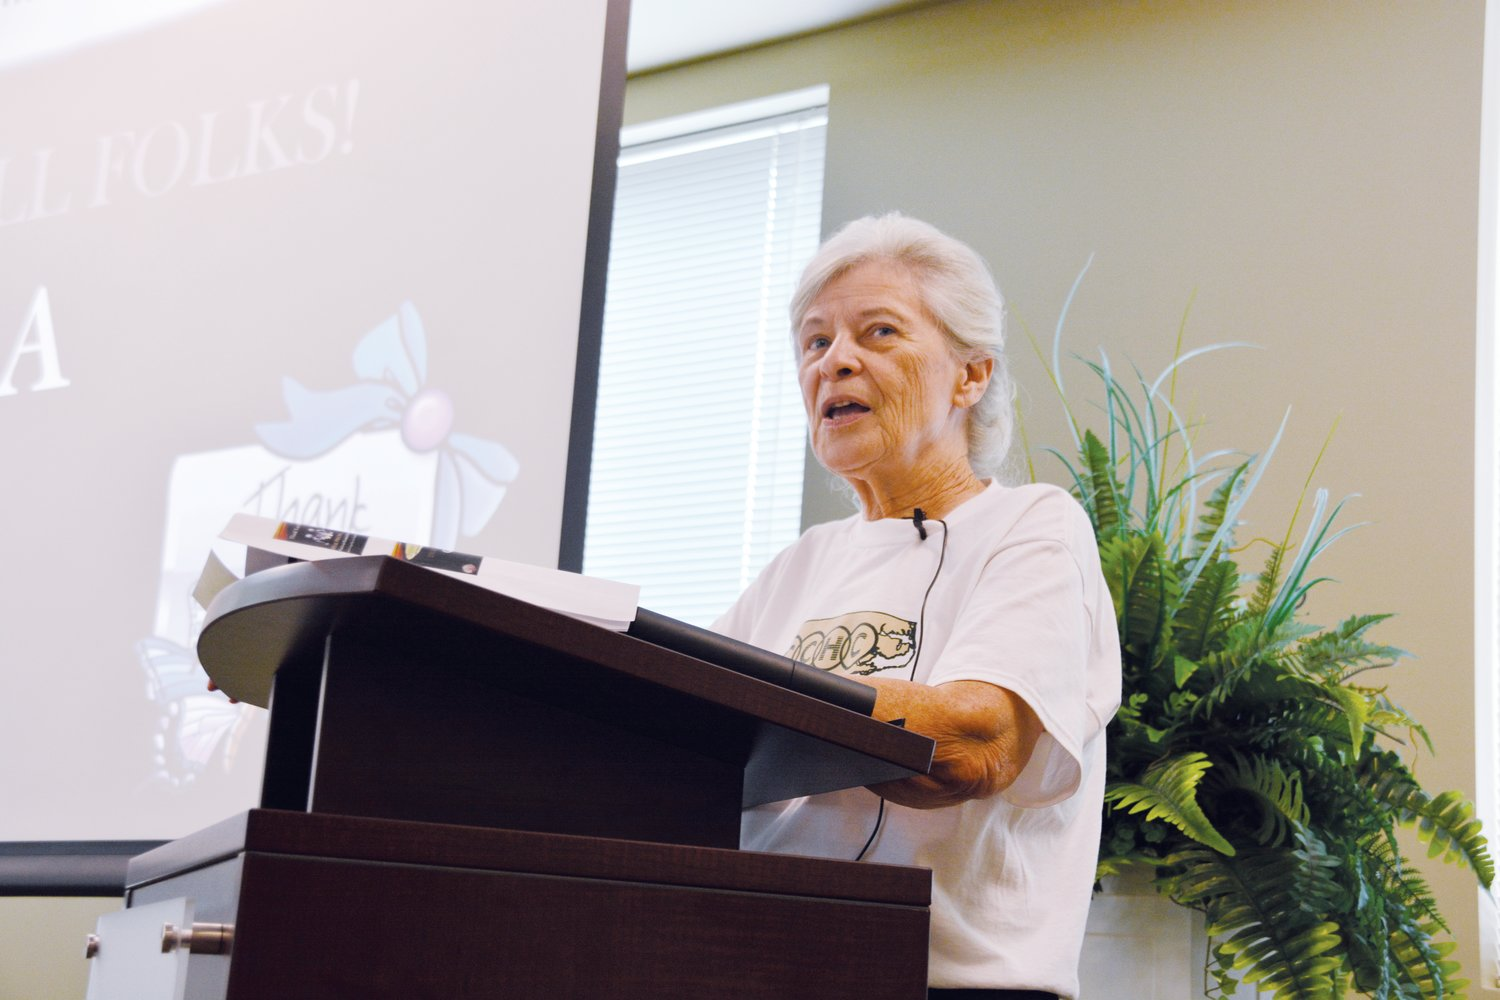 Patricia Bolton talks about her experiences as a patient at First Choice Community Health Center's 40th anniversary luncheon.